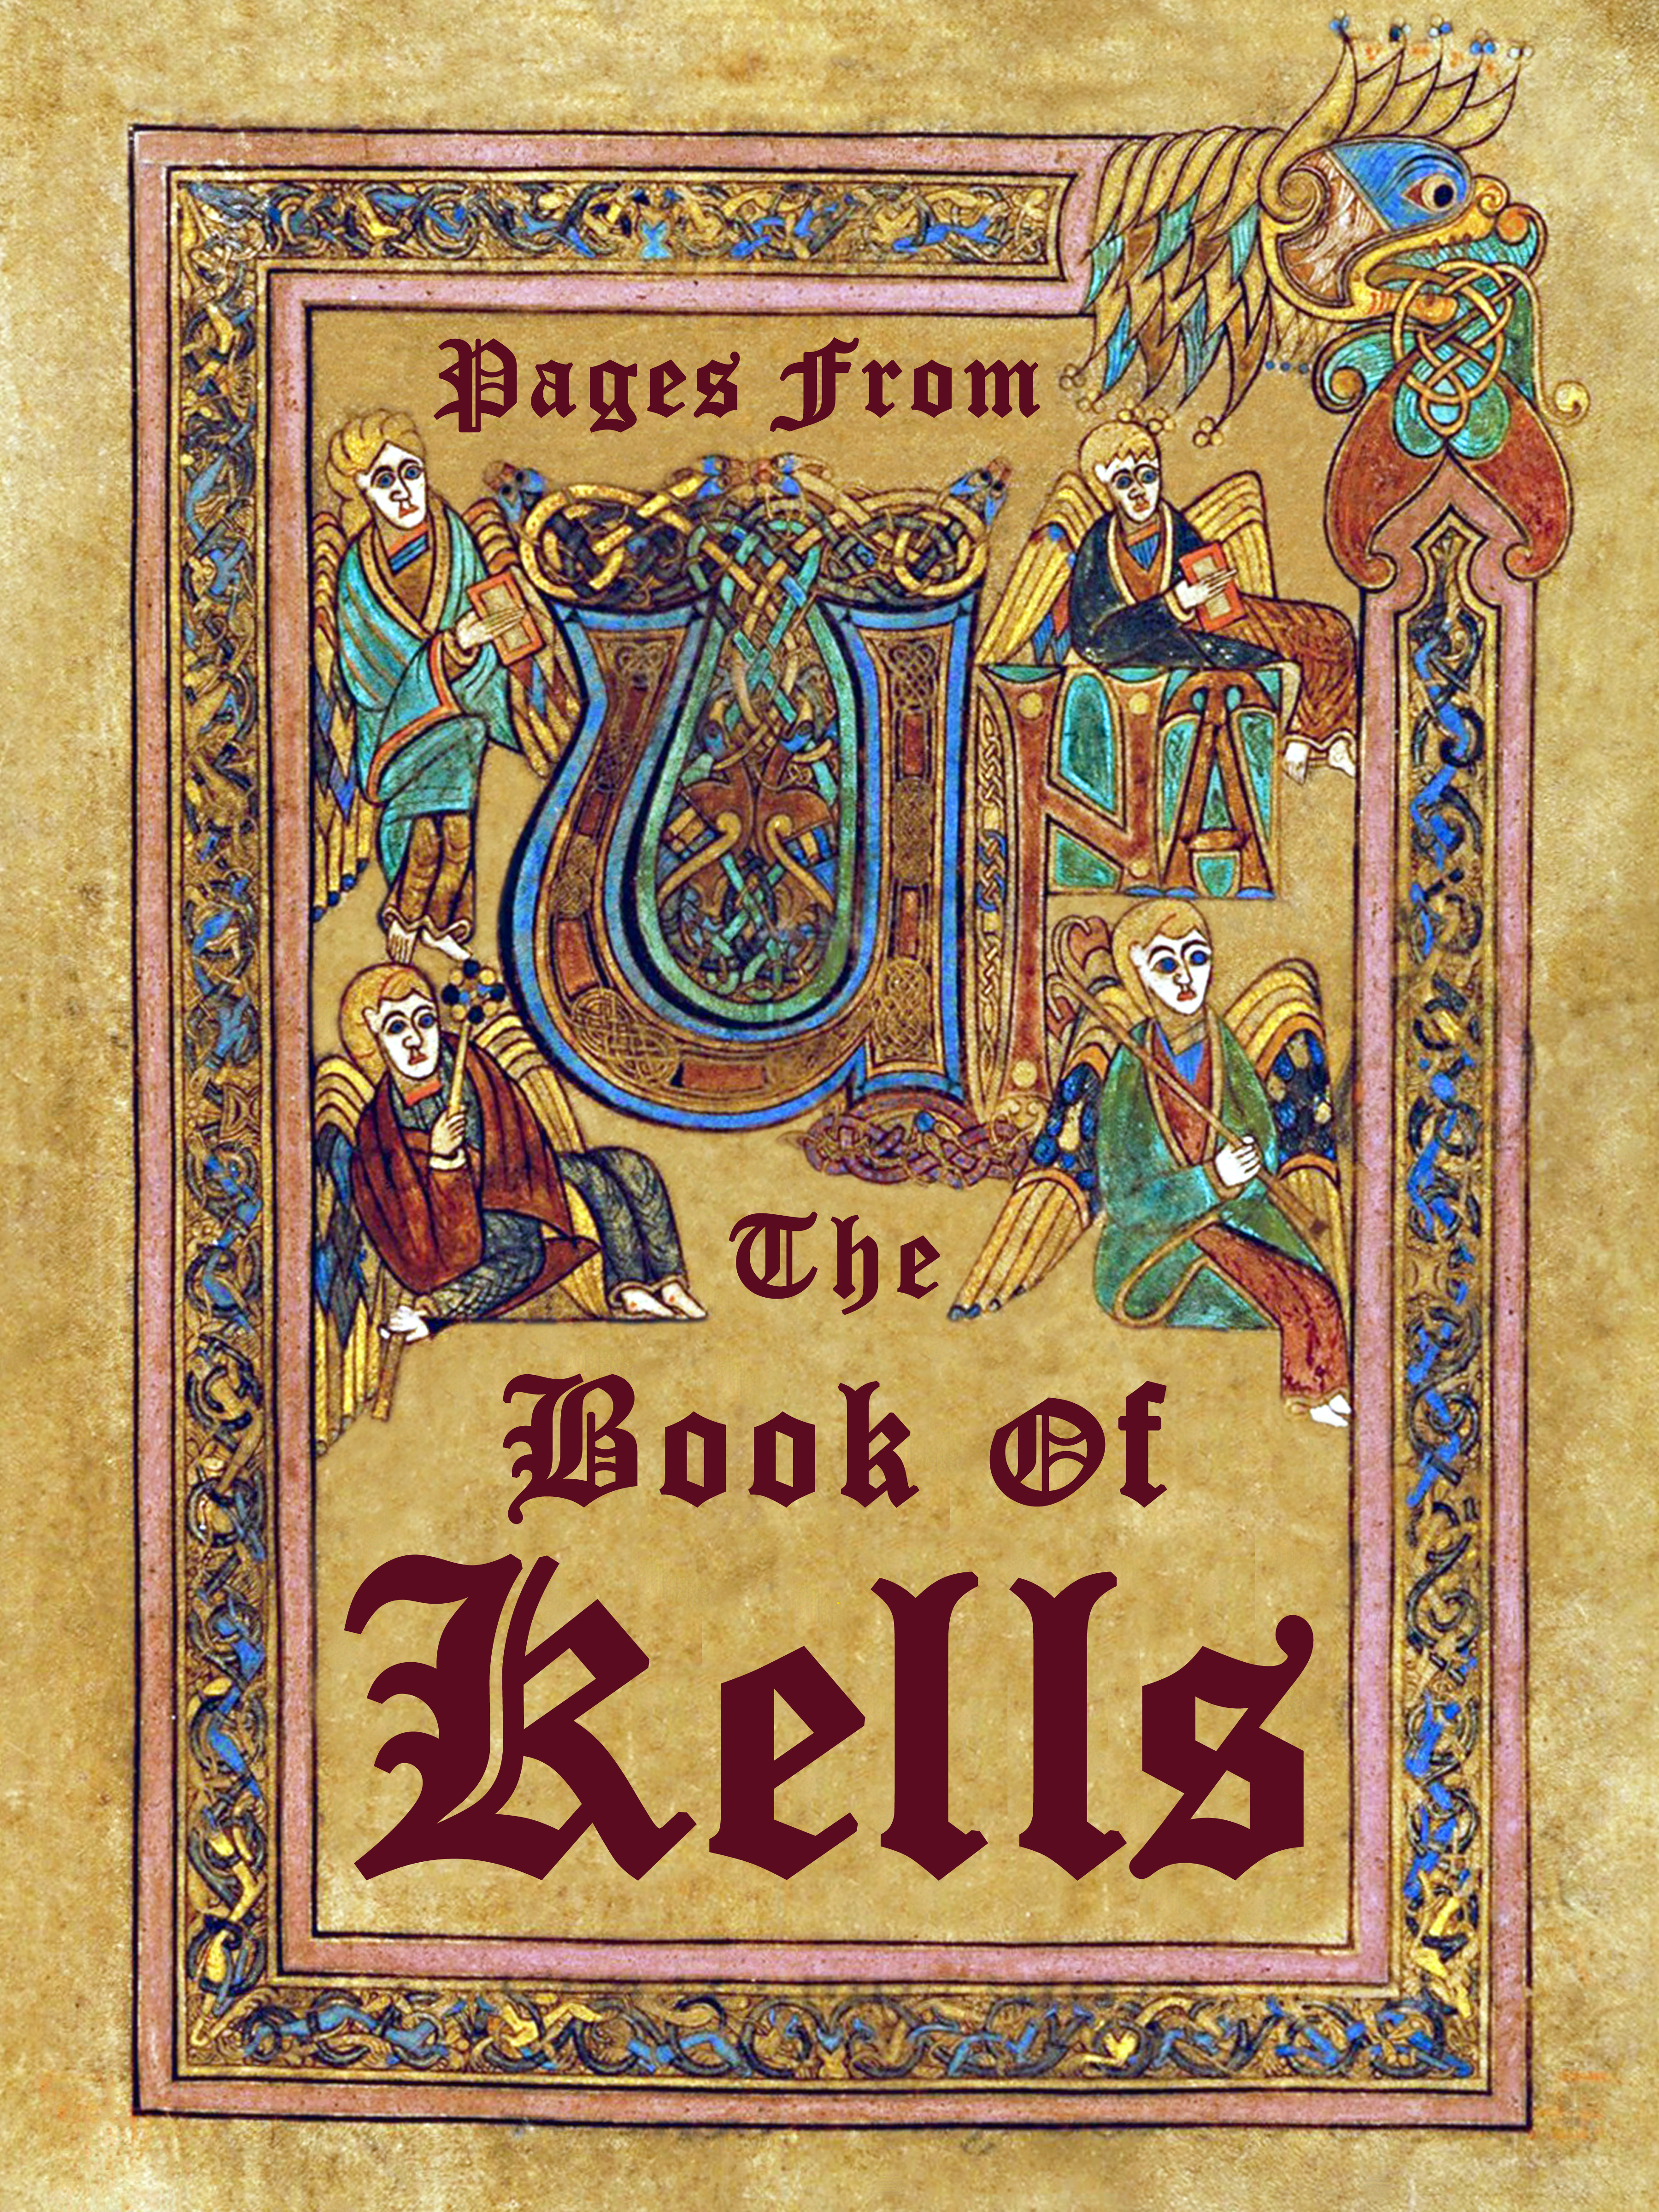 The Book of Kells (Irish: Leabhar Cheanannais) (Dublin, Trinity College Library, MS A. I. (58), sometimes known as the Book of Columba) is an illuminated manuscript Gospel book in Latin, containing the four Gospels of the New Testament together with various prefatory texts and tables. It was created by Celtic monks ca. 800 or slightly earlier. The text of the Gospels is largely drawn from the Vulgate, although it also includes several passages drawn from the earlier versions of the Bible known as the Vetus Latina. It is a masterwork of Western calligraphy and represents the pinnacle of Insular illumination. It is also widely regarded as Ireland's finest national treasure. The illustrations and ornamentation of the Book of Kells surpass that of other Insular Gospel books in extravagance and complexity. The decoration combines traditional Christian iconography with the ornate swirling motifs typical of Insular art. Figures of humans, animals and mythical beasts, together with Celtic knots and interlacing patterns in vibrant colours, enliven the manuscript's pages. Many of these minor decorative elements are imbued with Christian symbolism and so further emphasise the themes of the major illustrations. The manuscript today comprises 340 folios and, since 1953, has been bound in four volumes. The leaves are on high-quality calf vellum, and the unprecedentedly elaborate ornamentation that covers them includes ten full-page illustrations and text pages that are vibrant with decorated initials and interlinear miniatures and mark the furthest extension of the anti-classical and energetic qualities of Insular art. The Insular majuscule script of the text itself appears to be the work of at least three different scribes. The lettering is in iron gall ink, and the colours used were derived from a wide range of substances, many of which were imports from distant lands. The manuscript takes its name from the Abbey of Kells that was its home.